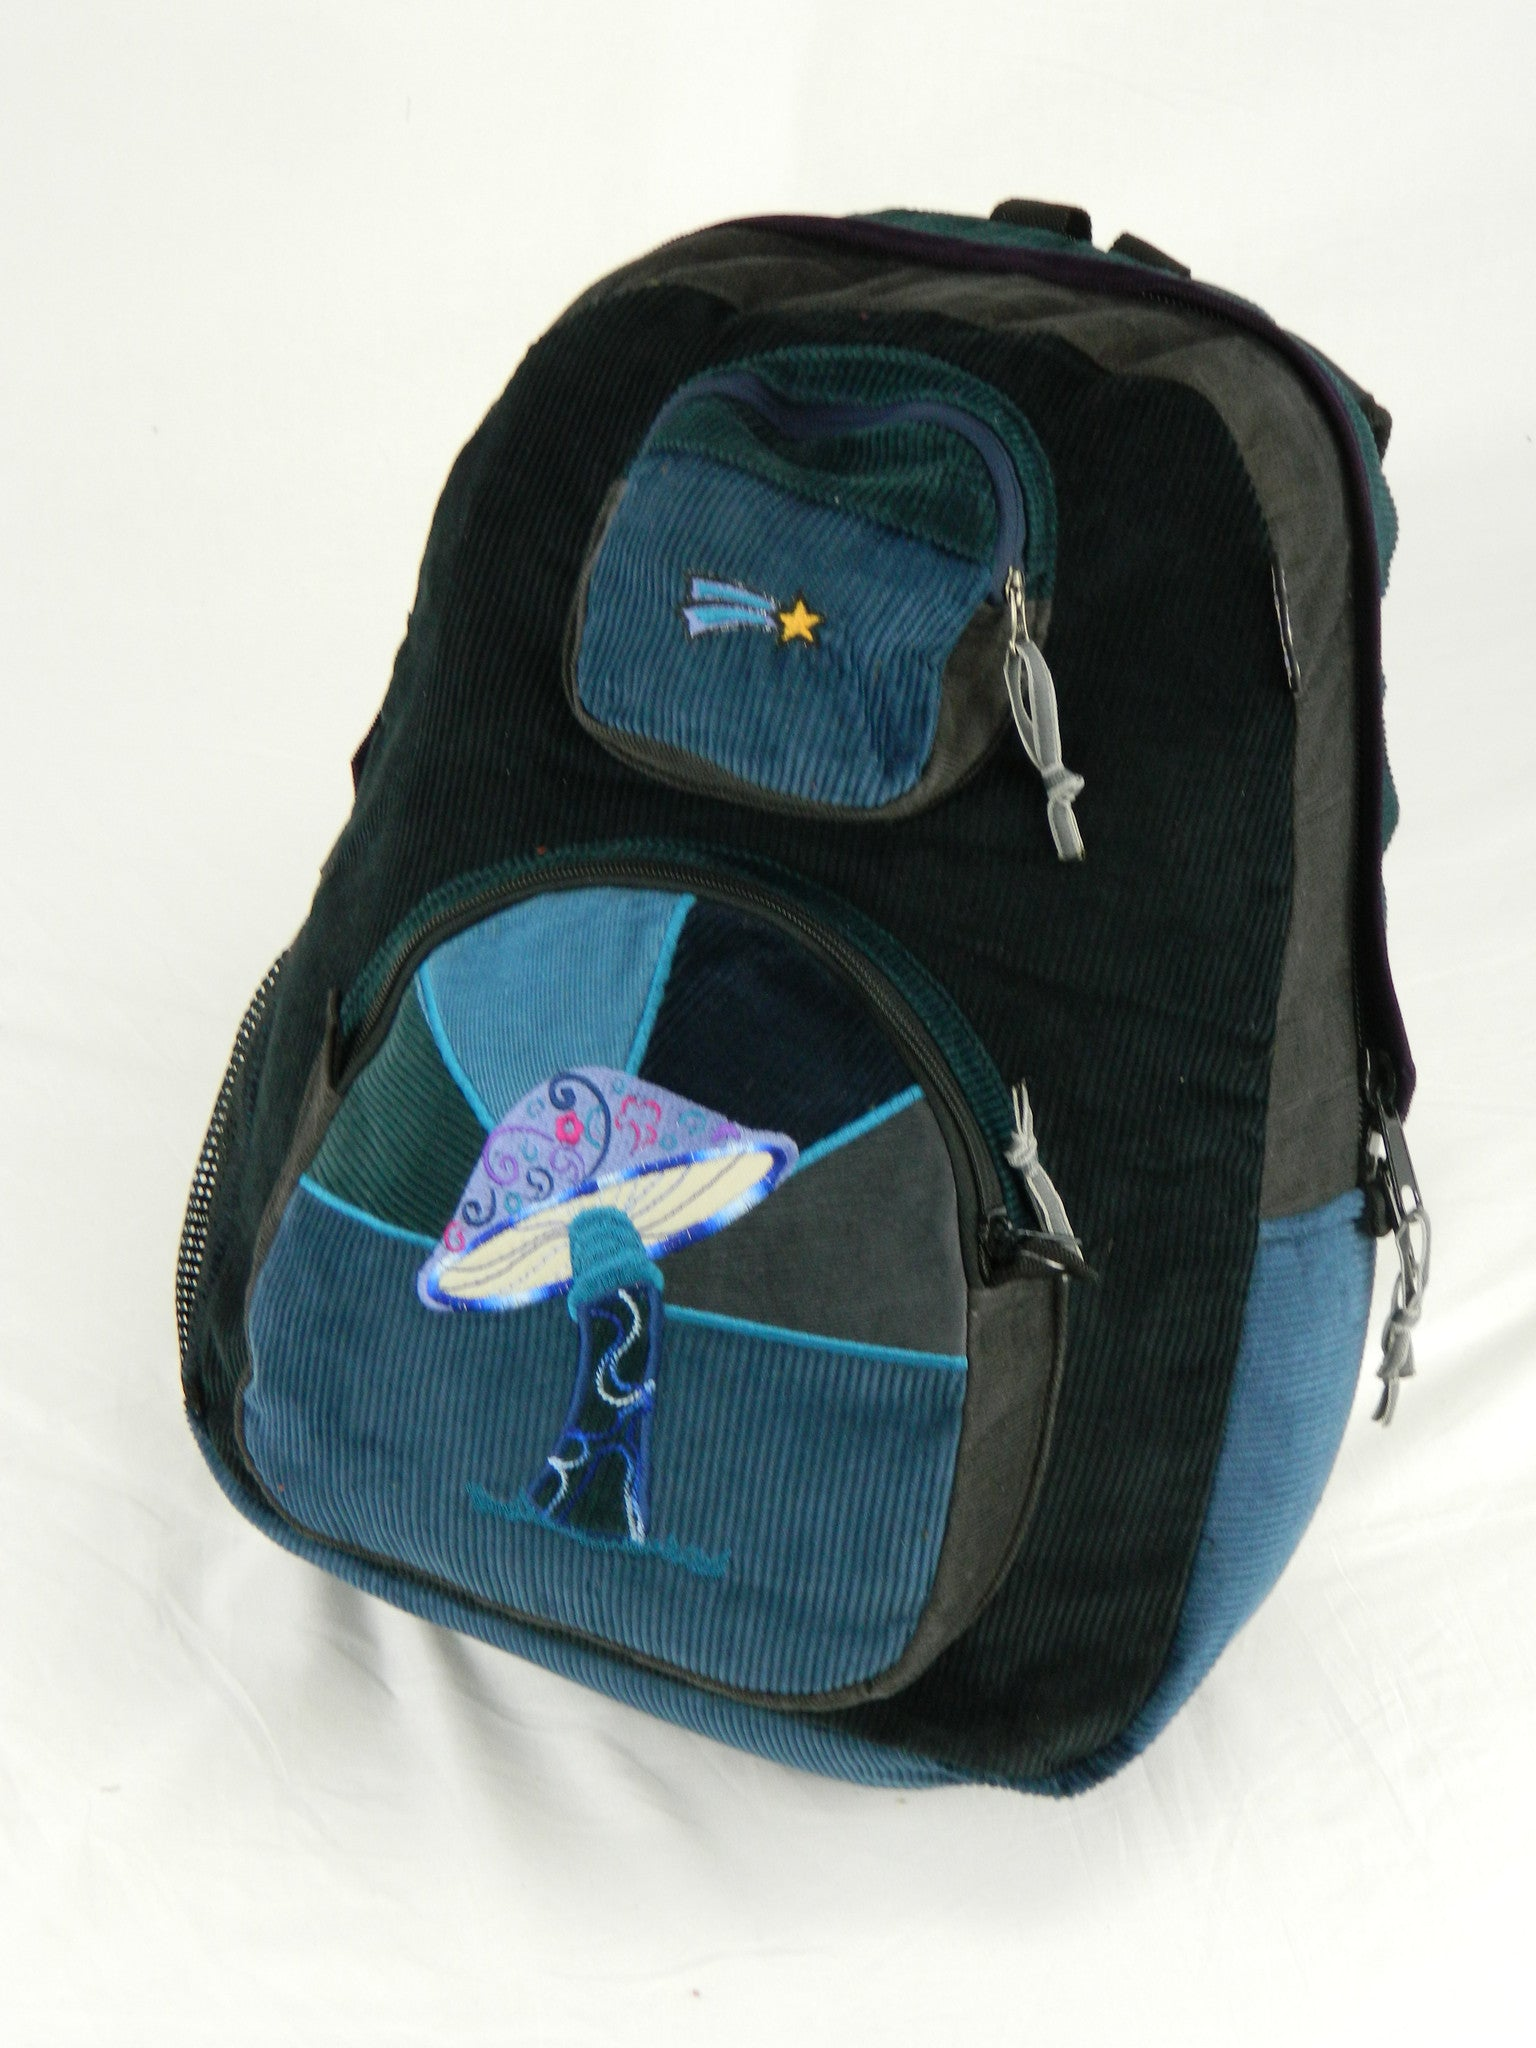 Patchwork Corduroy Backpack with Mushroom Applique (Large)